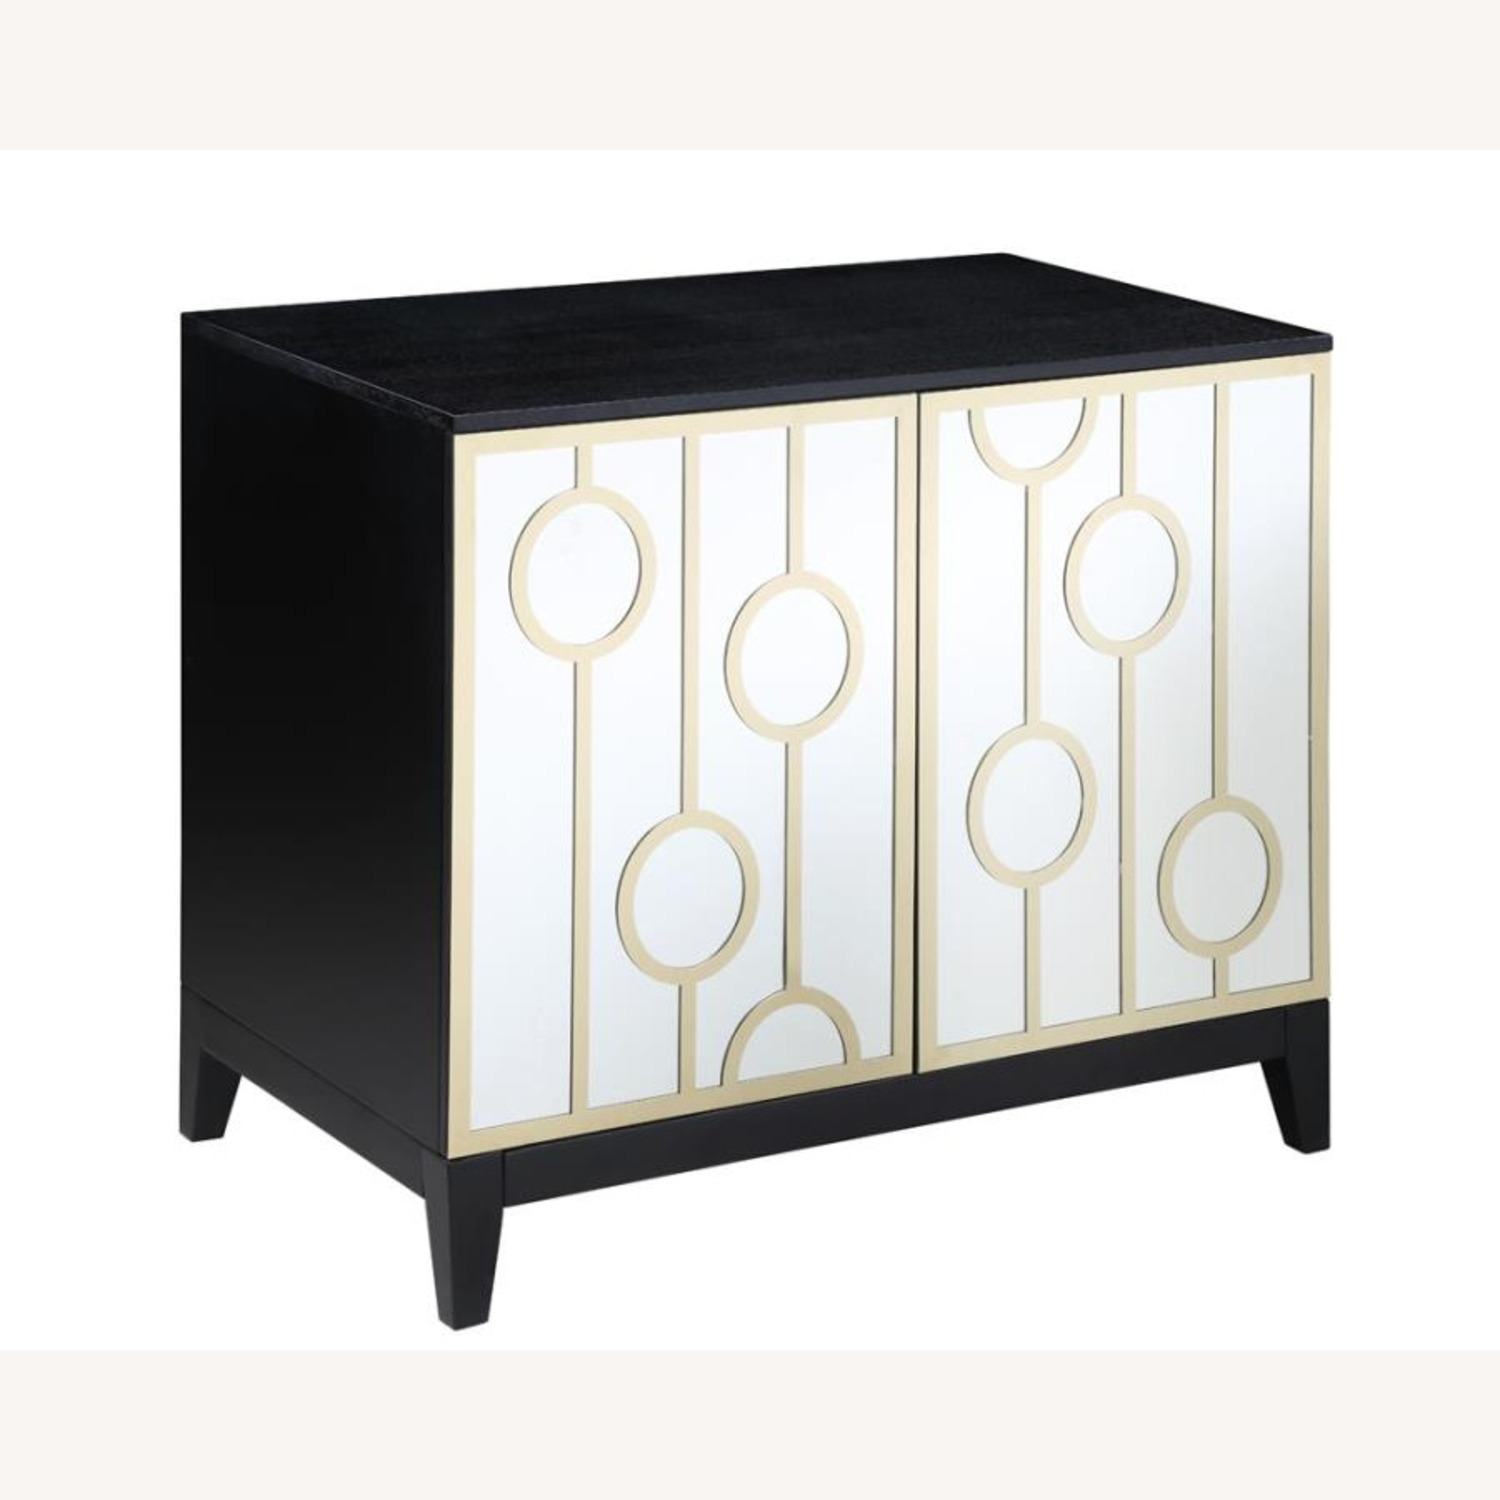 Server W Decorative Mirrored Fronts & Gold Rings - image-0